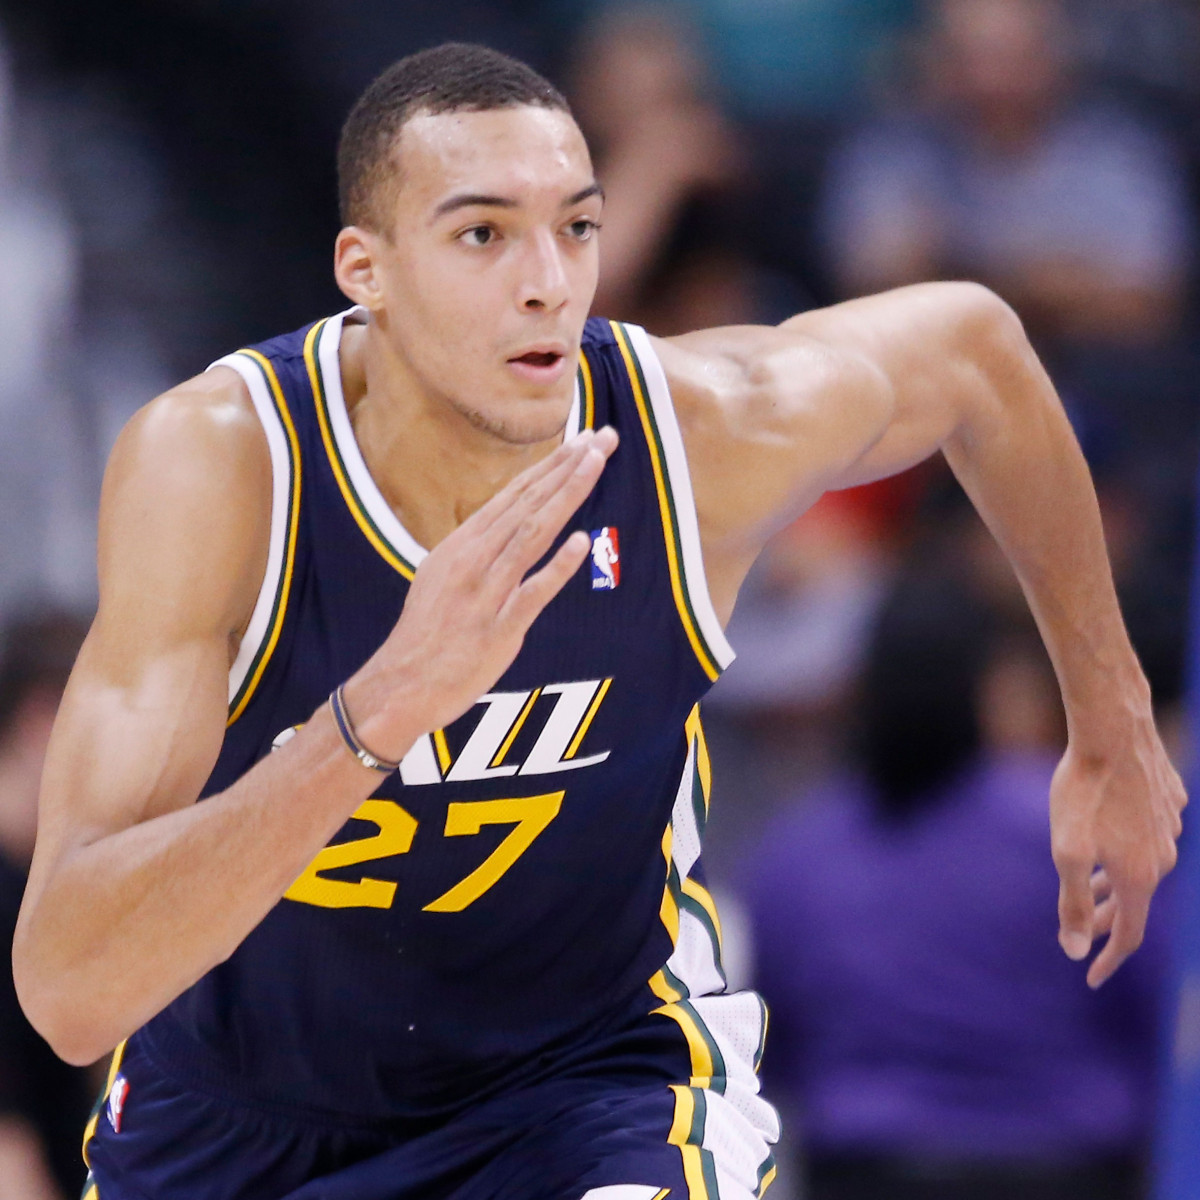 Photo of Rudy Gobert, 2013-2014 season